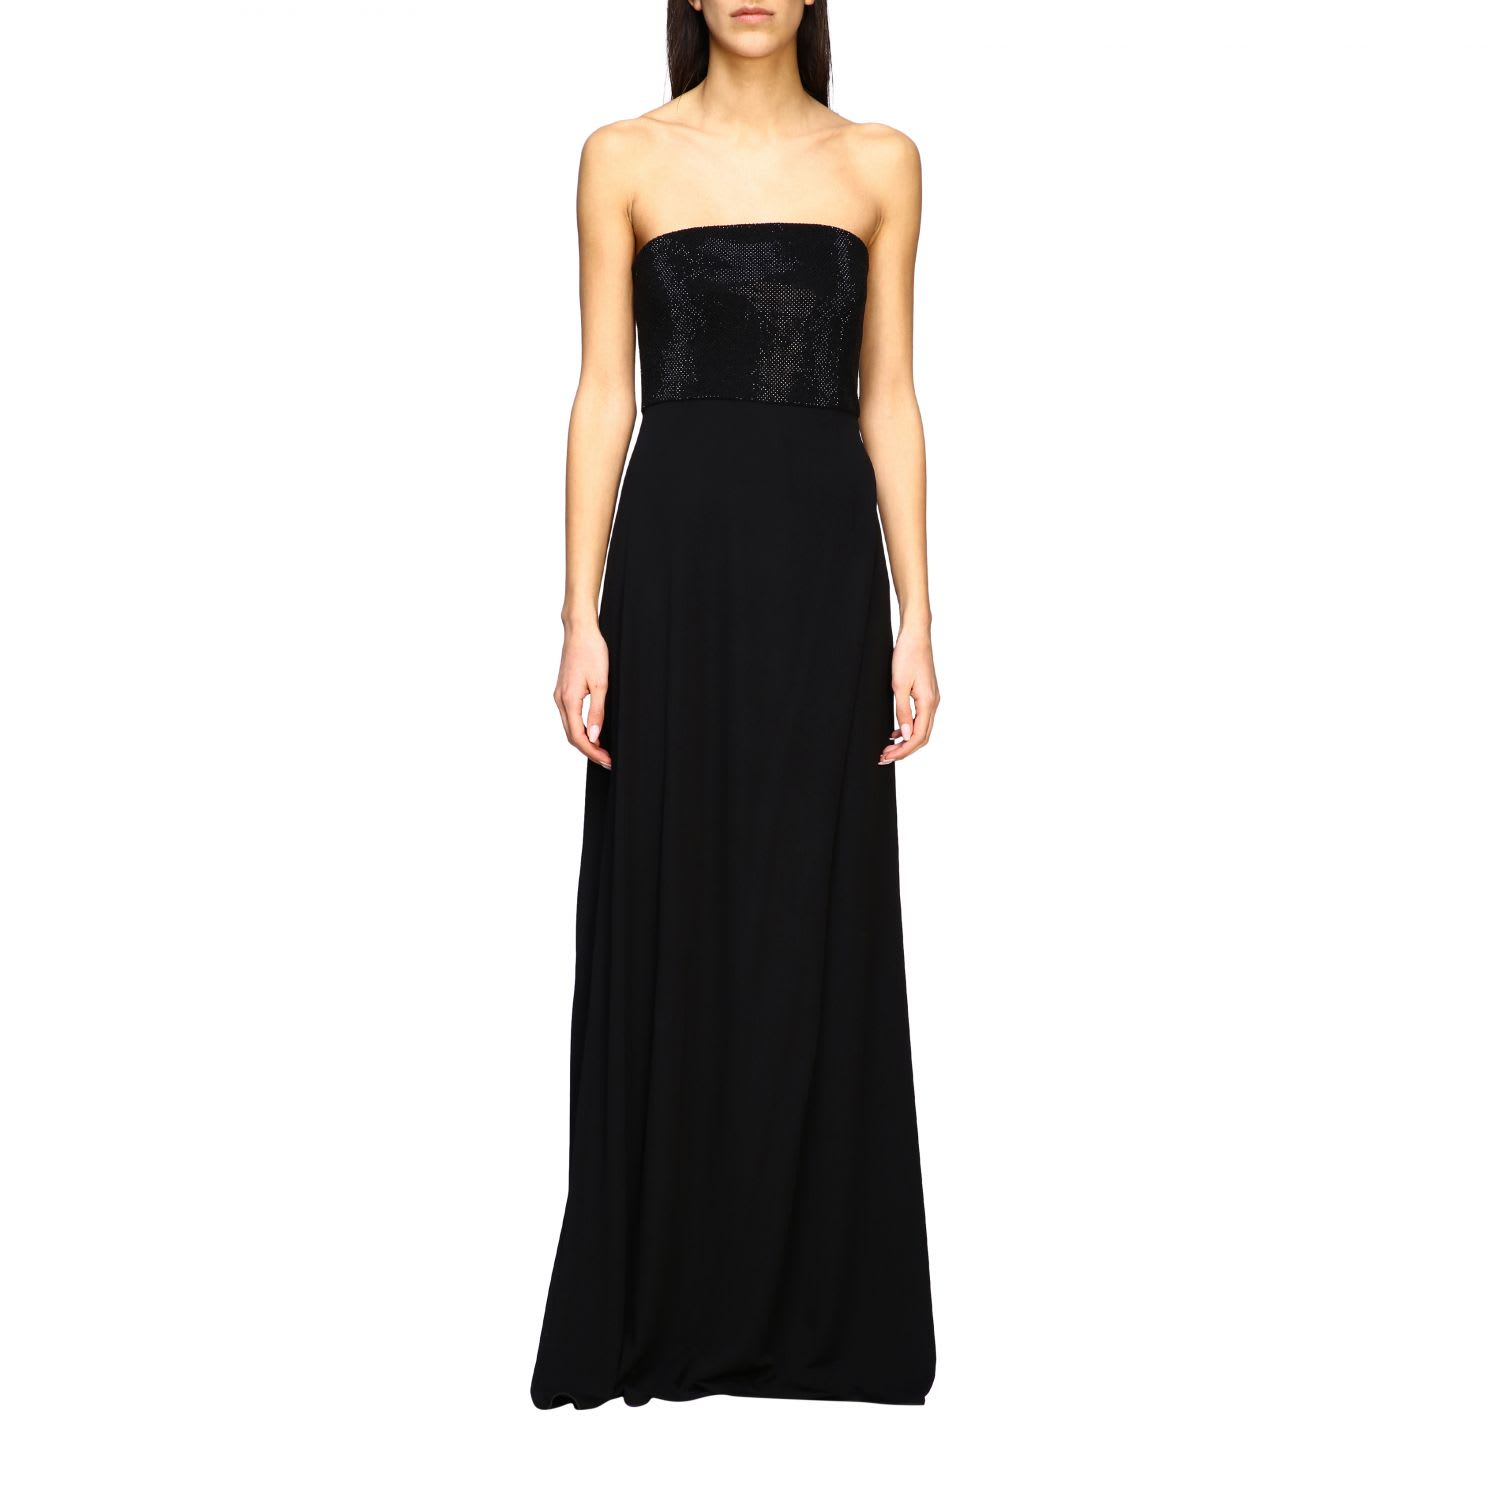 Buy Emporio Armani Dress Long Emporio Armani Dress With Rhinestone Bodice online, shop Emporio Armani with free shipping